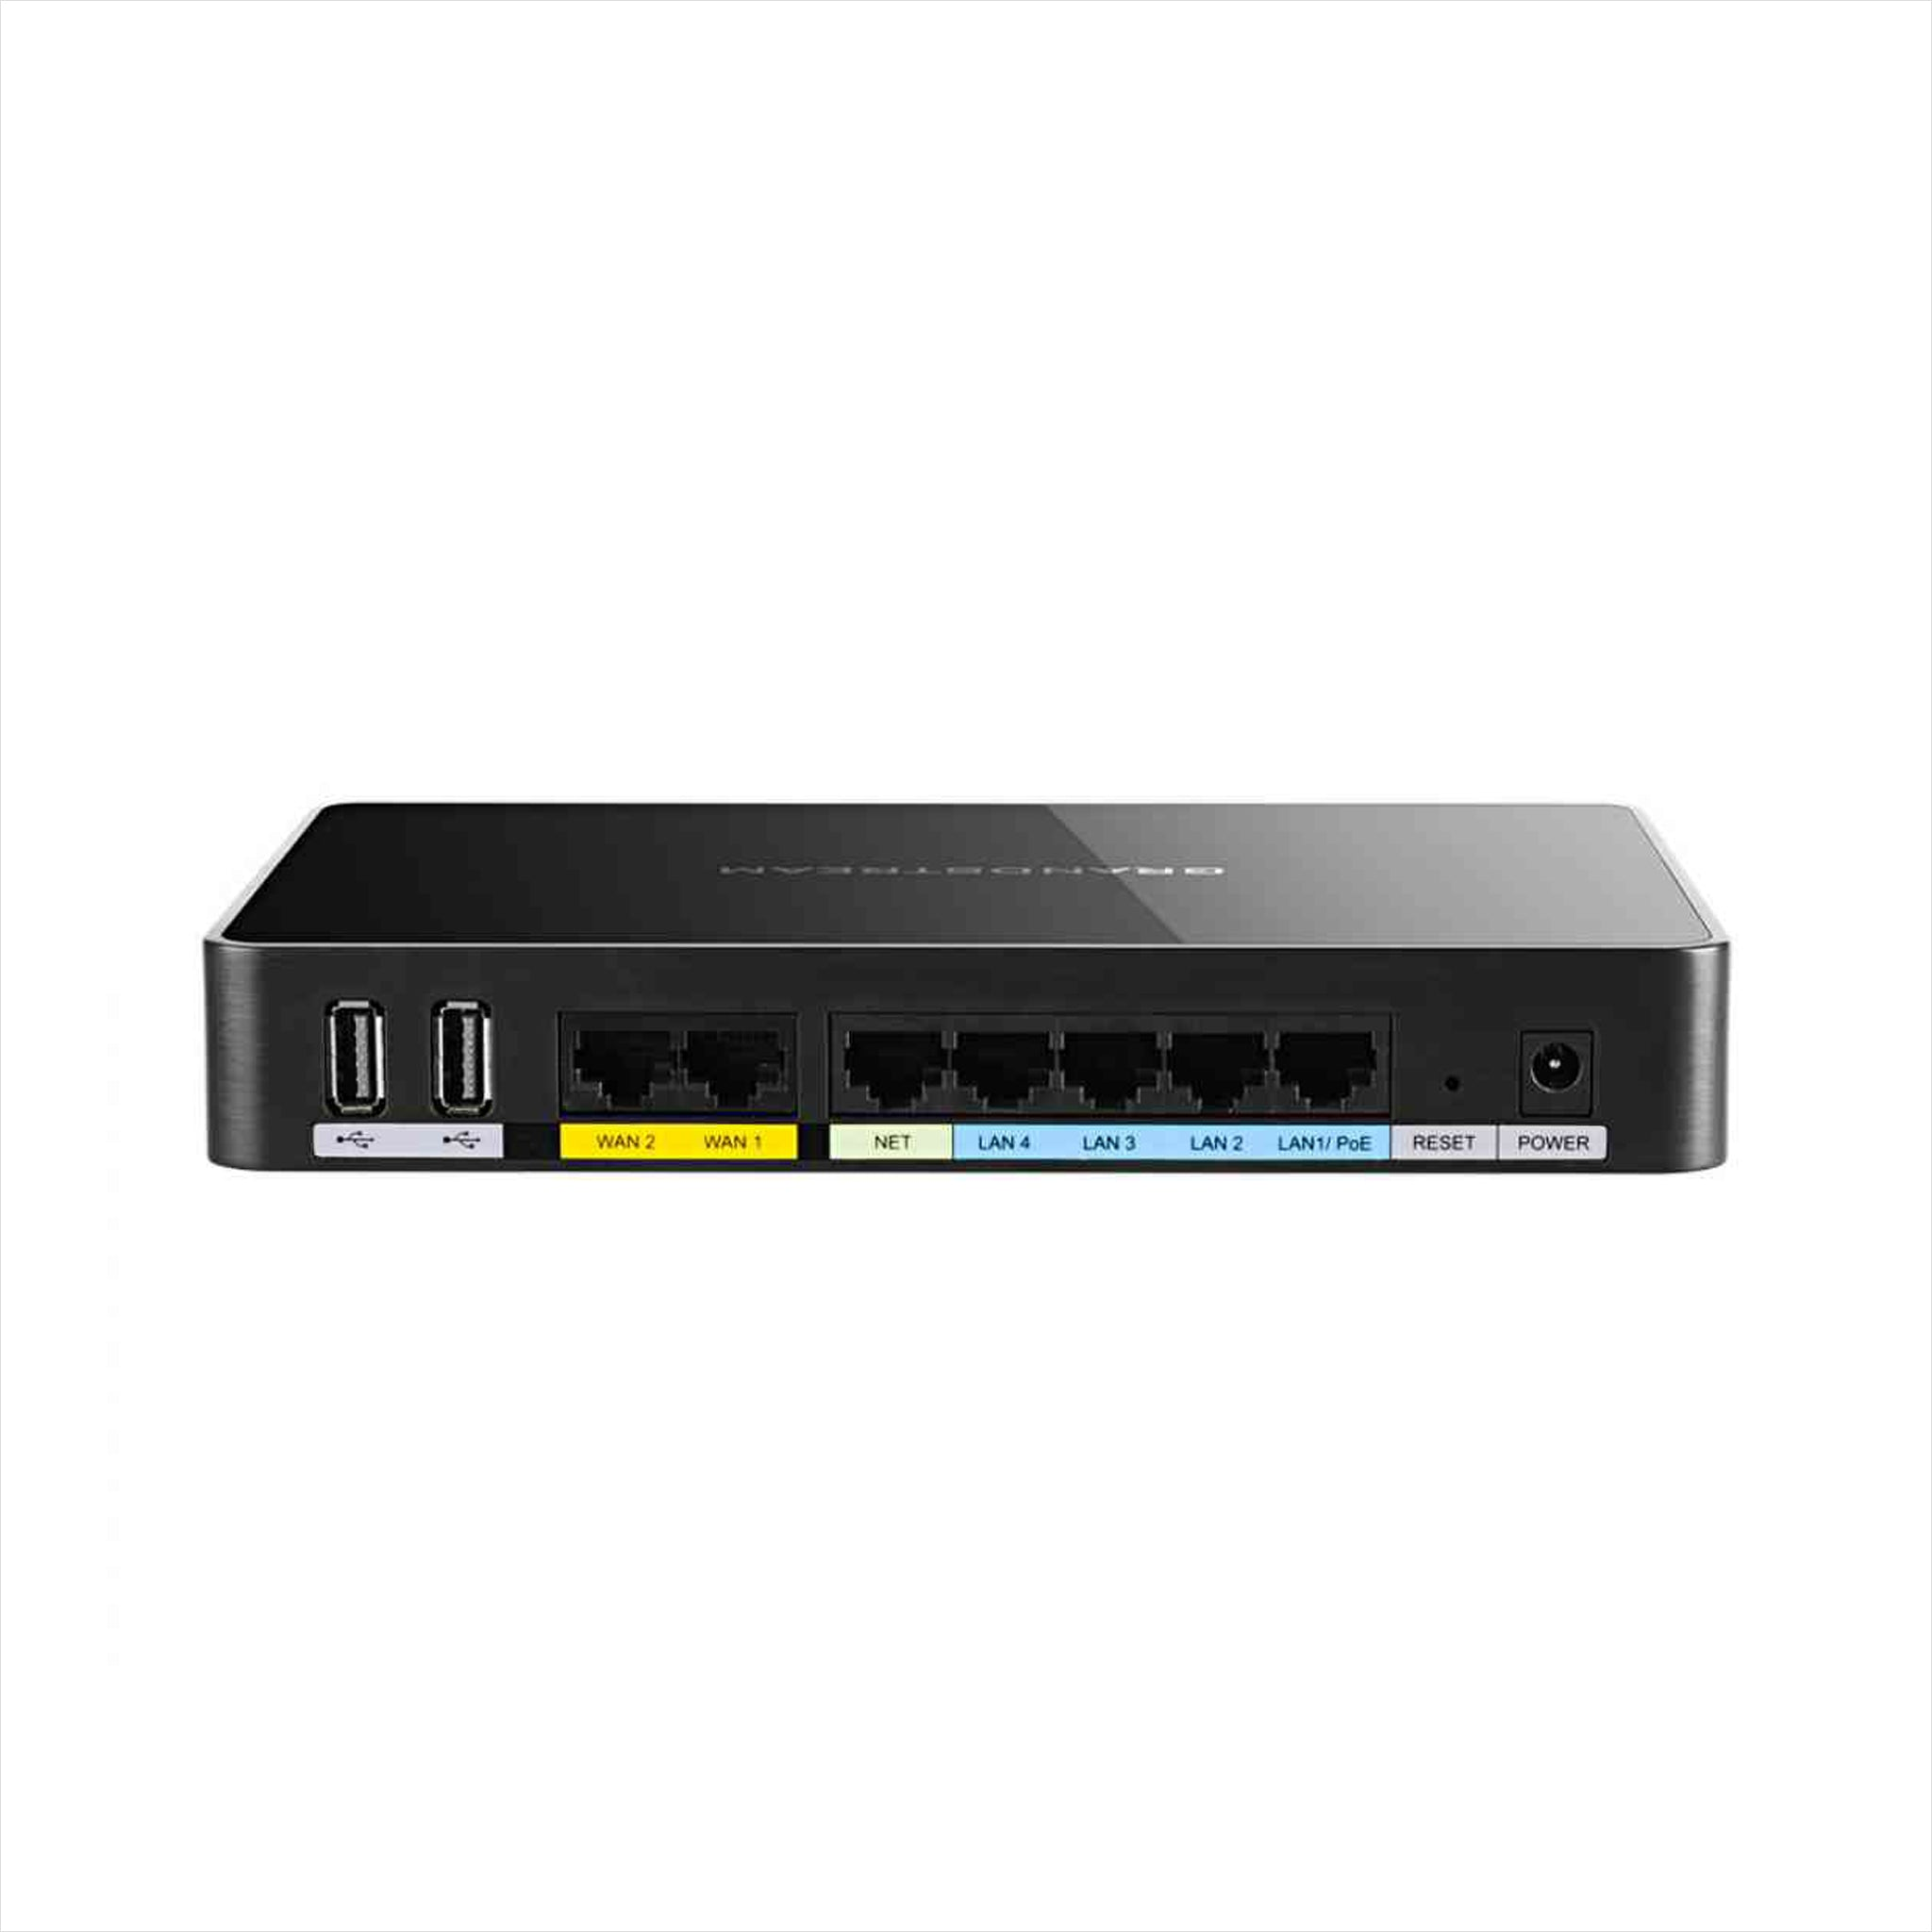 Grandstream Enterprise Multi-Wan Gigabit Vpn Router Gwn7000 * Gwn7000 - Routers